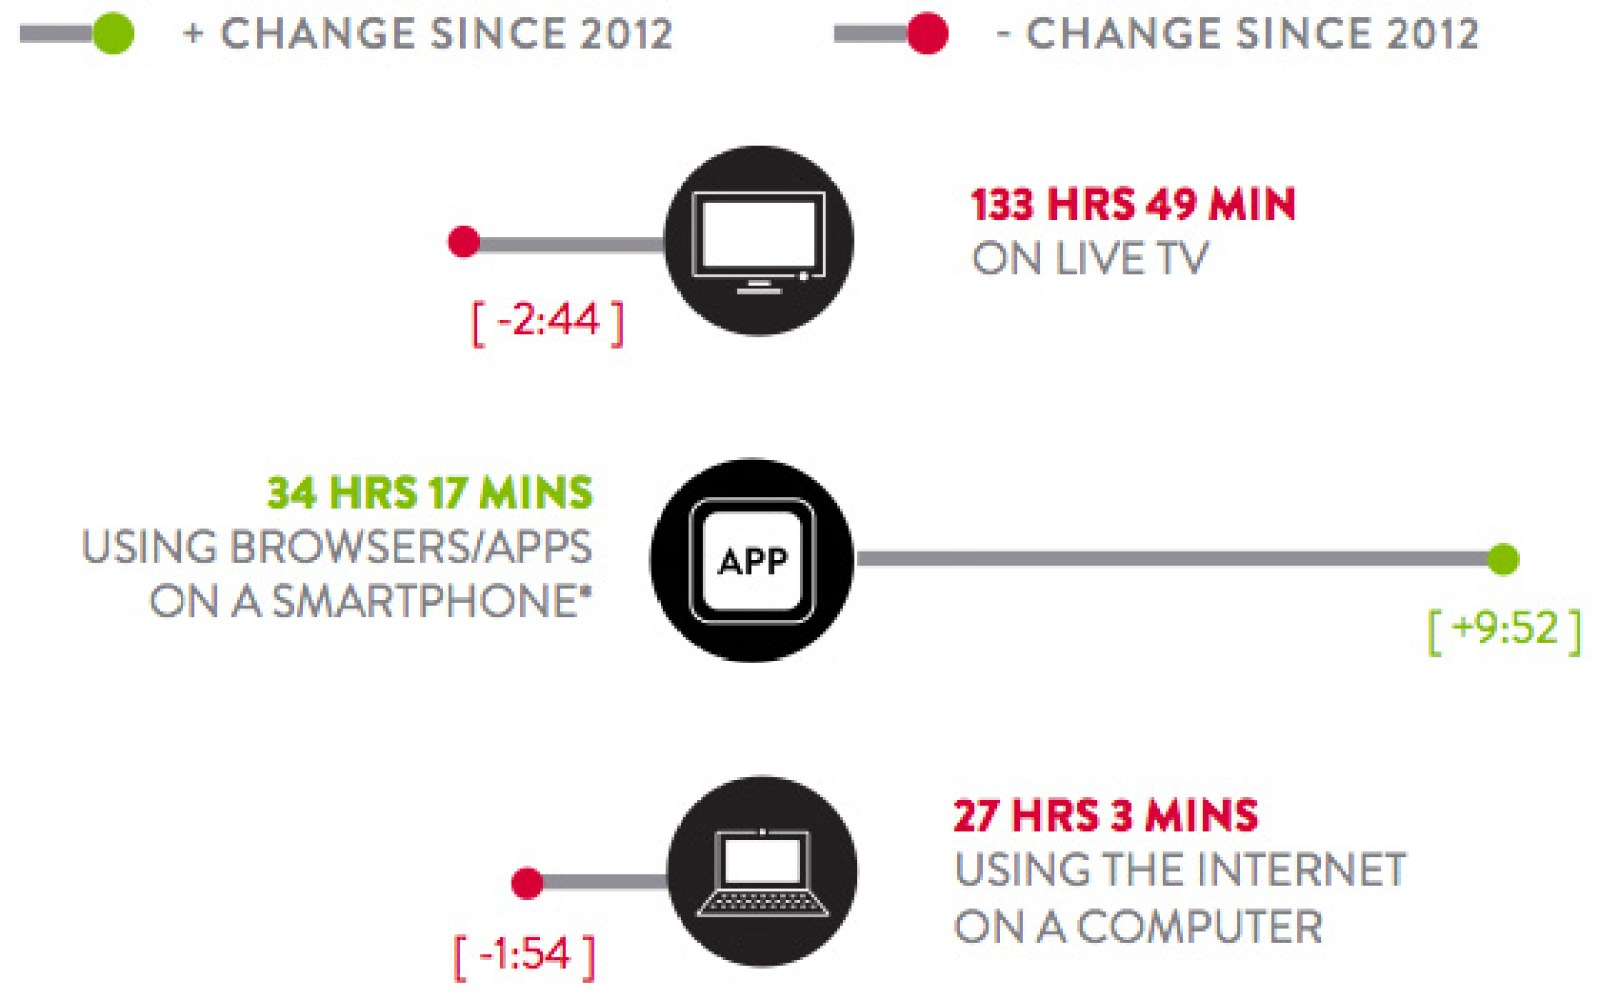 Americans officially living in post-PC world, spending more time using mobile apps & web